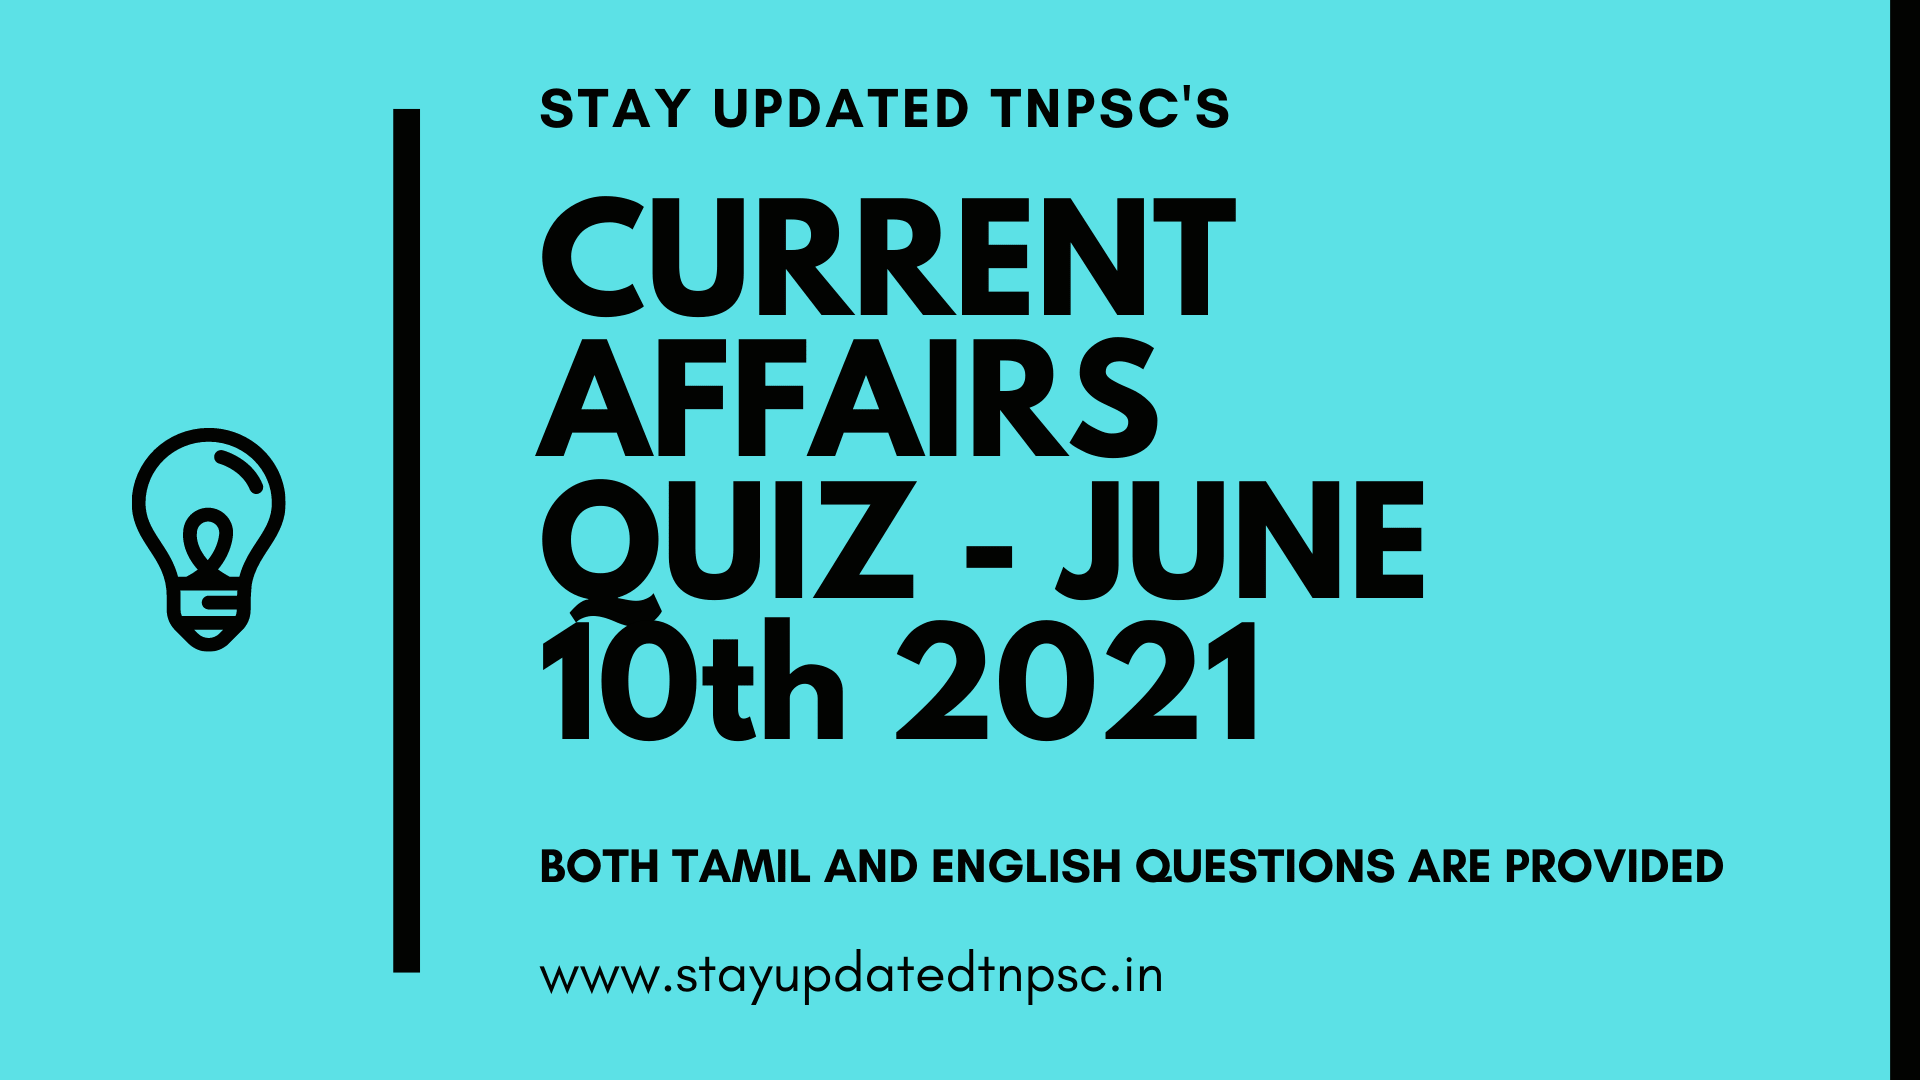 TNPSC DAILY CURRENT AFFAIRS: 10 JUNE 2021